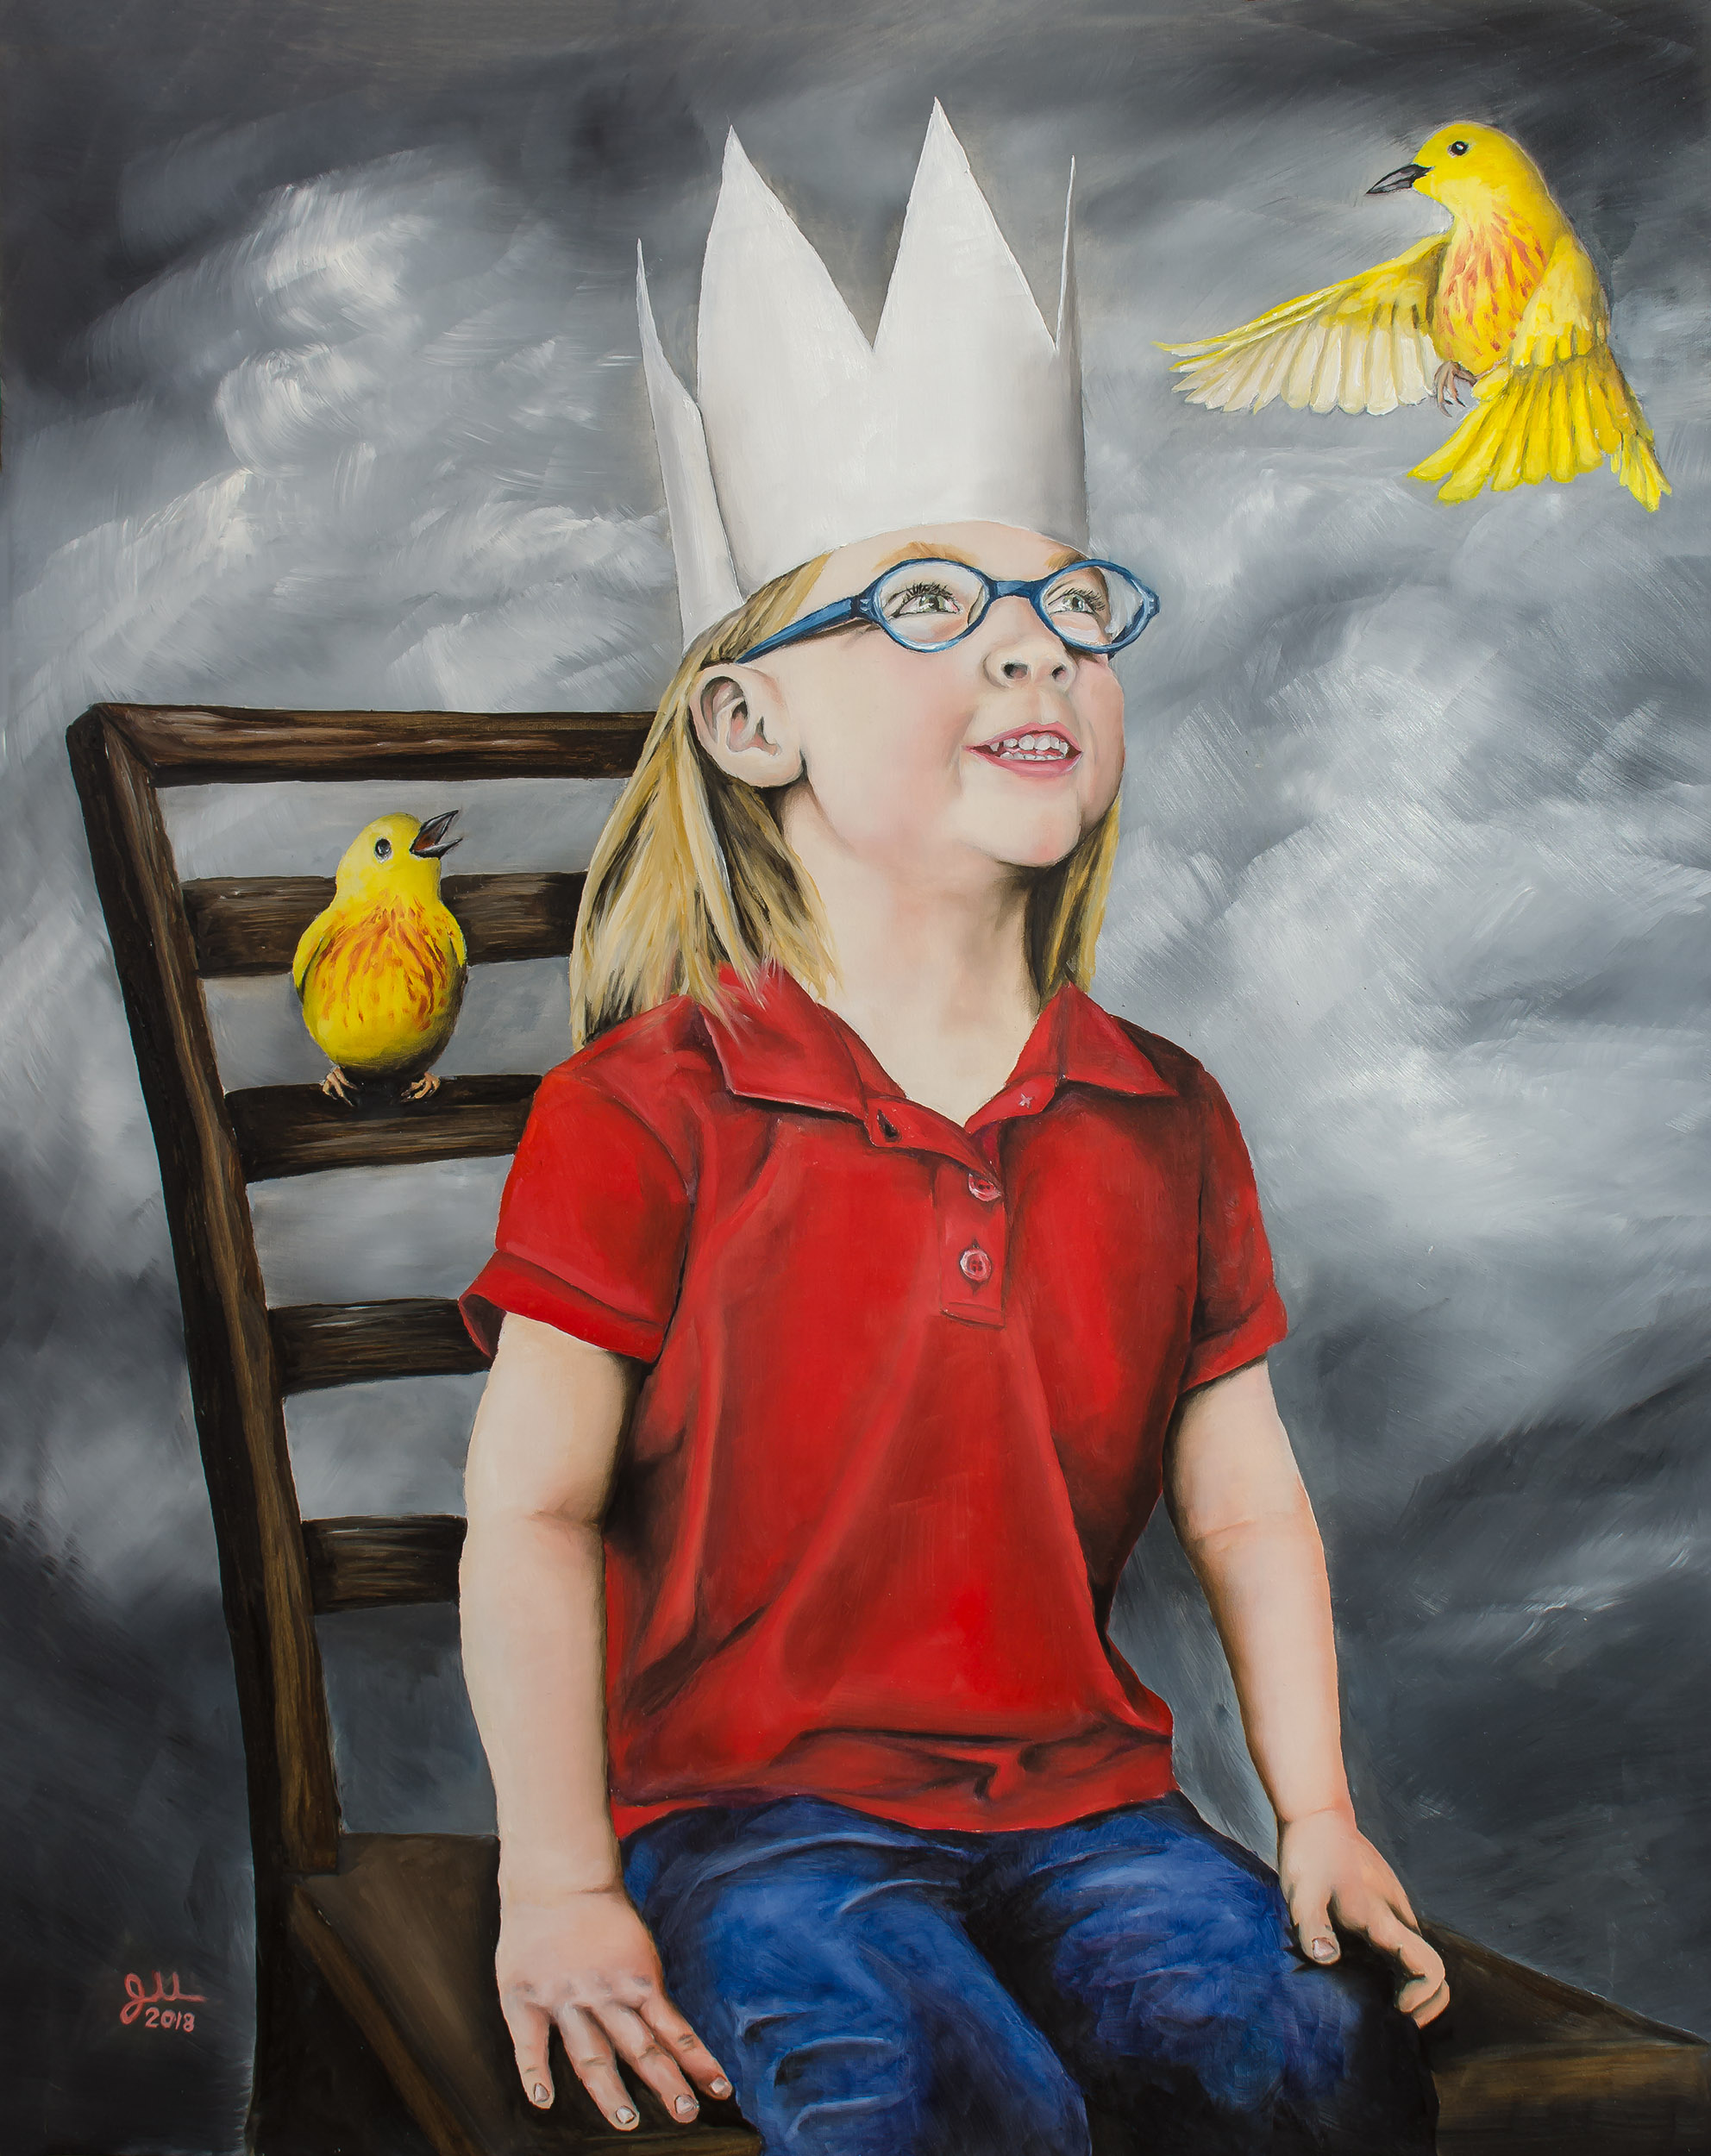 """THE QUEEN   Oil on aluminum panel, 16x20"""", 2018  Selection for the 2018 Annual Juried Exhibition, MacRostie Art Center, Grand Rapids, MN"""